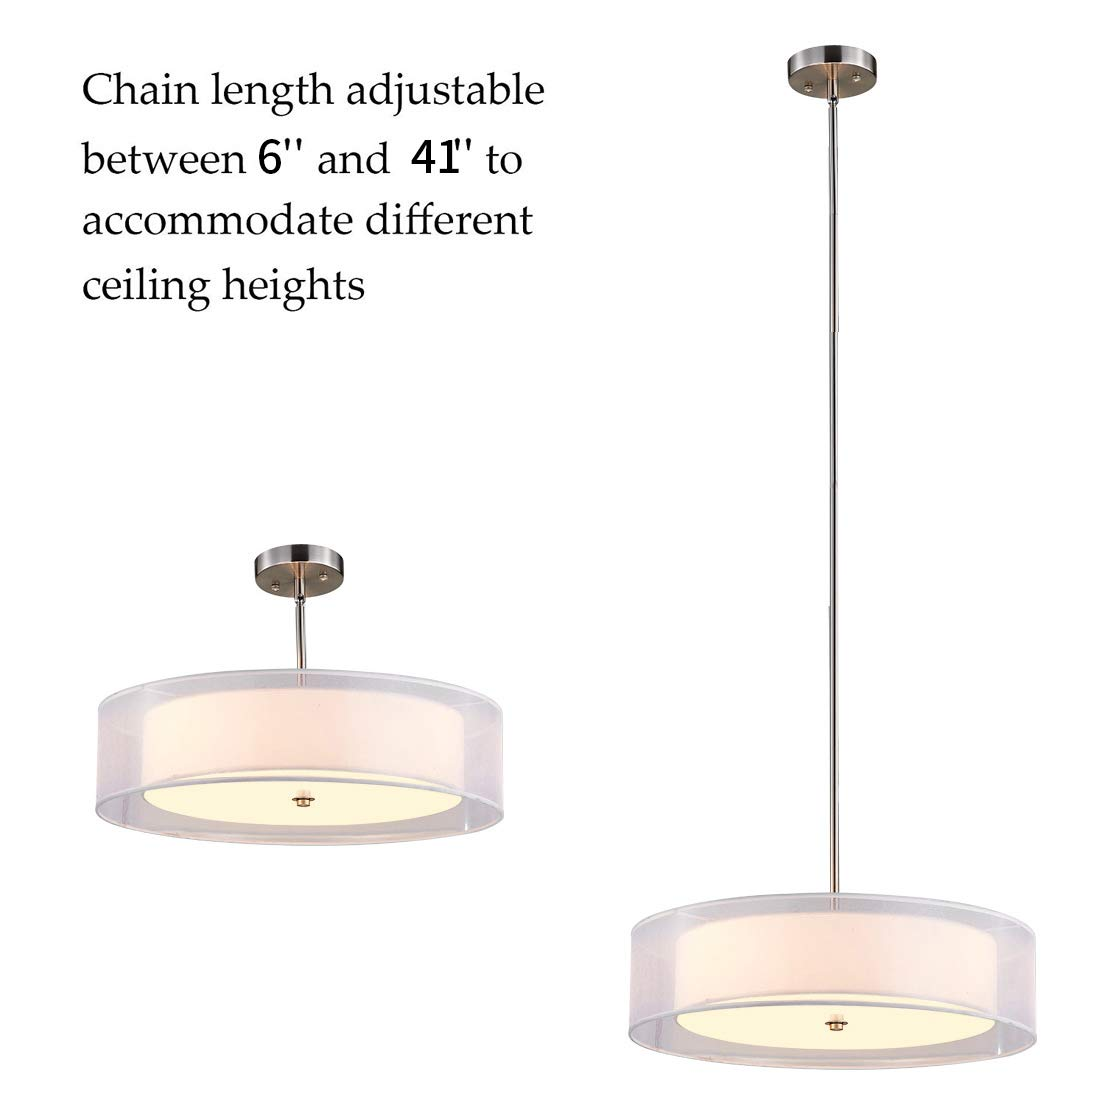 Drum Light,Double Drum Chandelier,White 3 Light Drum Pendant Light,20 ,Glass Diffuser,Adjustable Height,Brushed Nickel Finish,UL Listed by TZOE